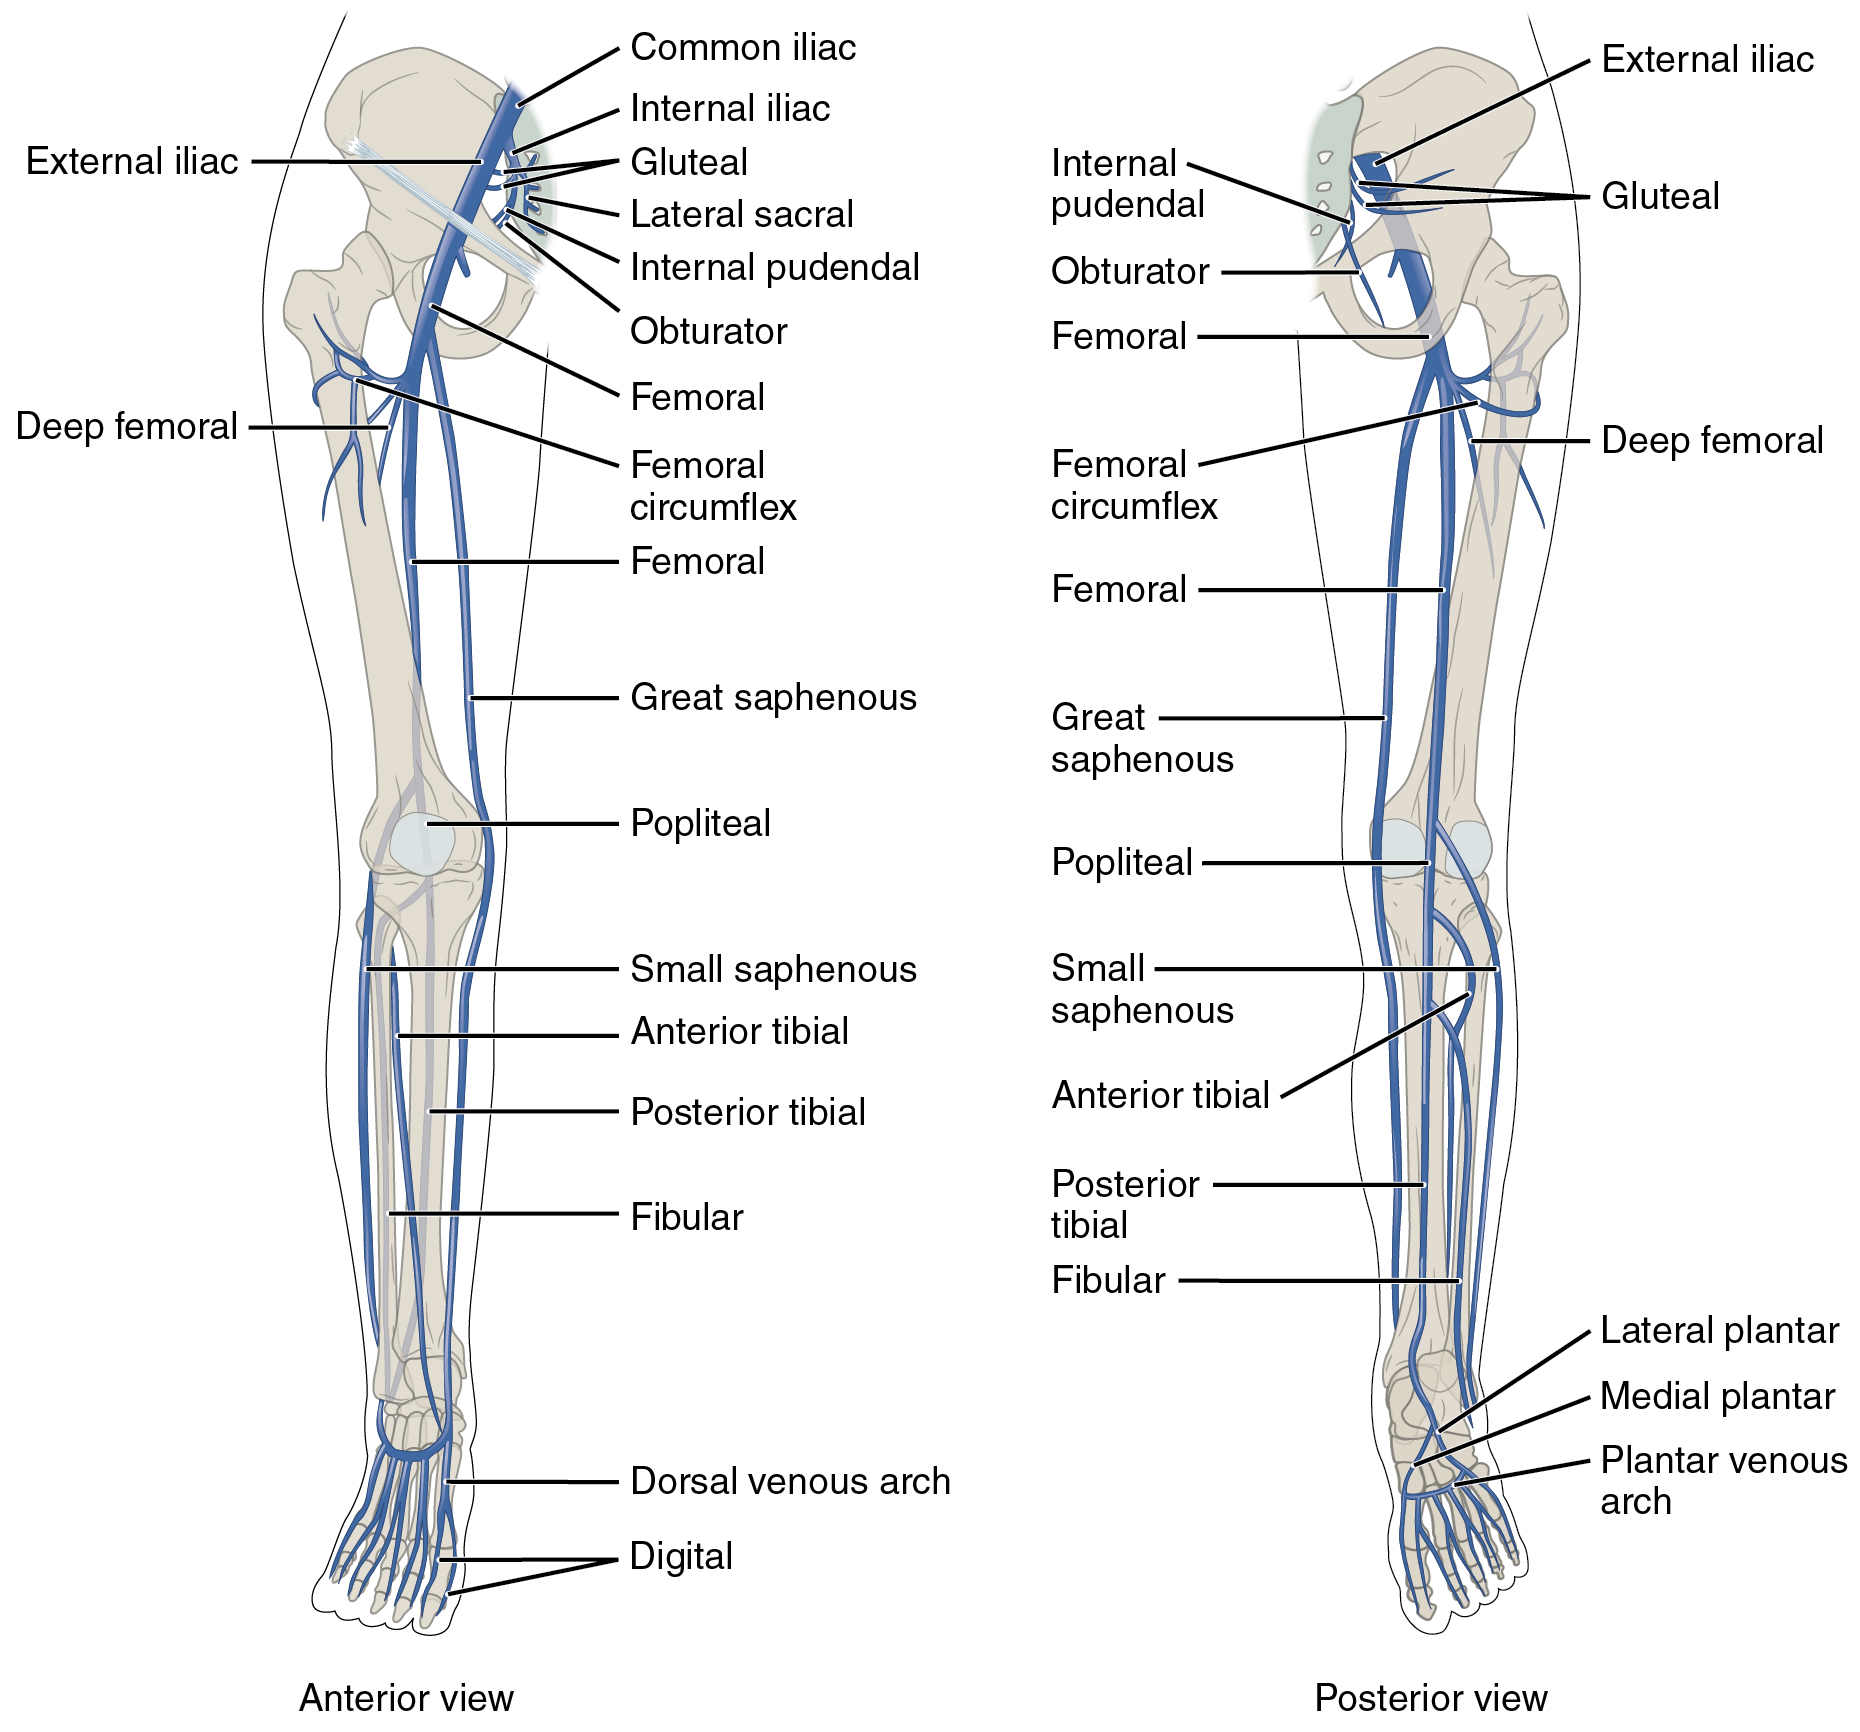 hight resolution of the left panel shows the anterior view of veins in the legs and the right figure 20